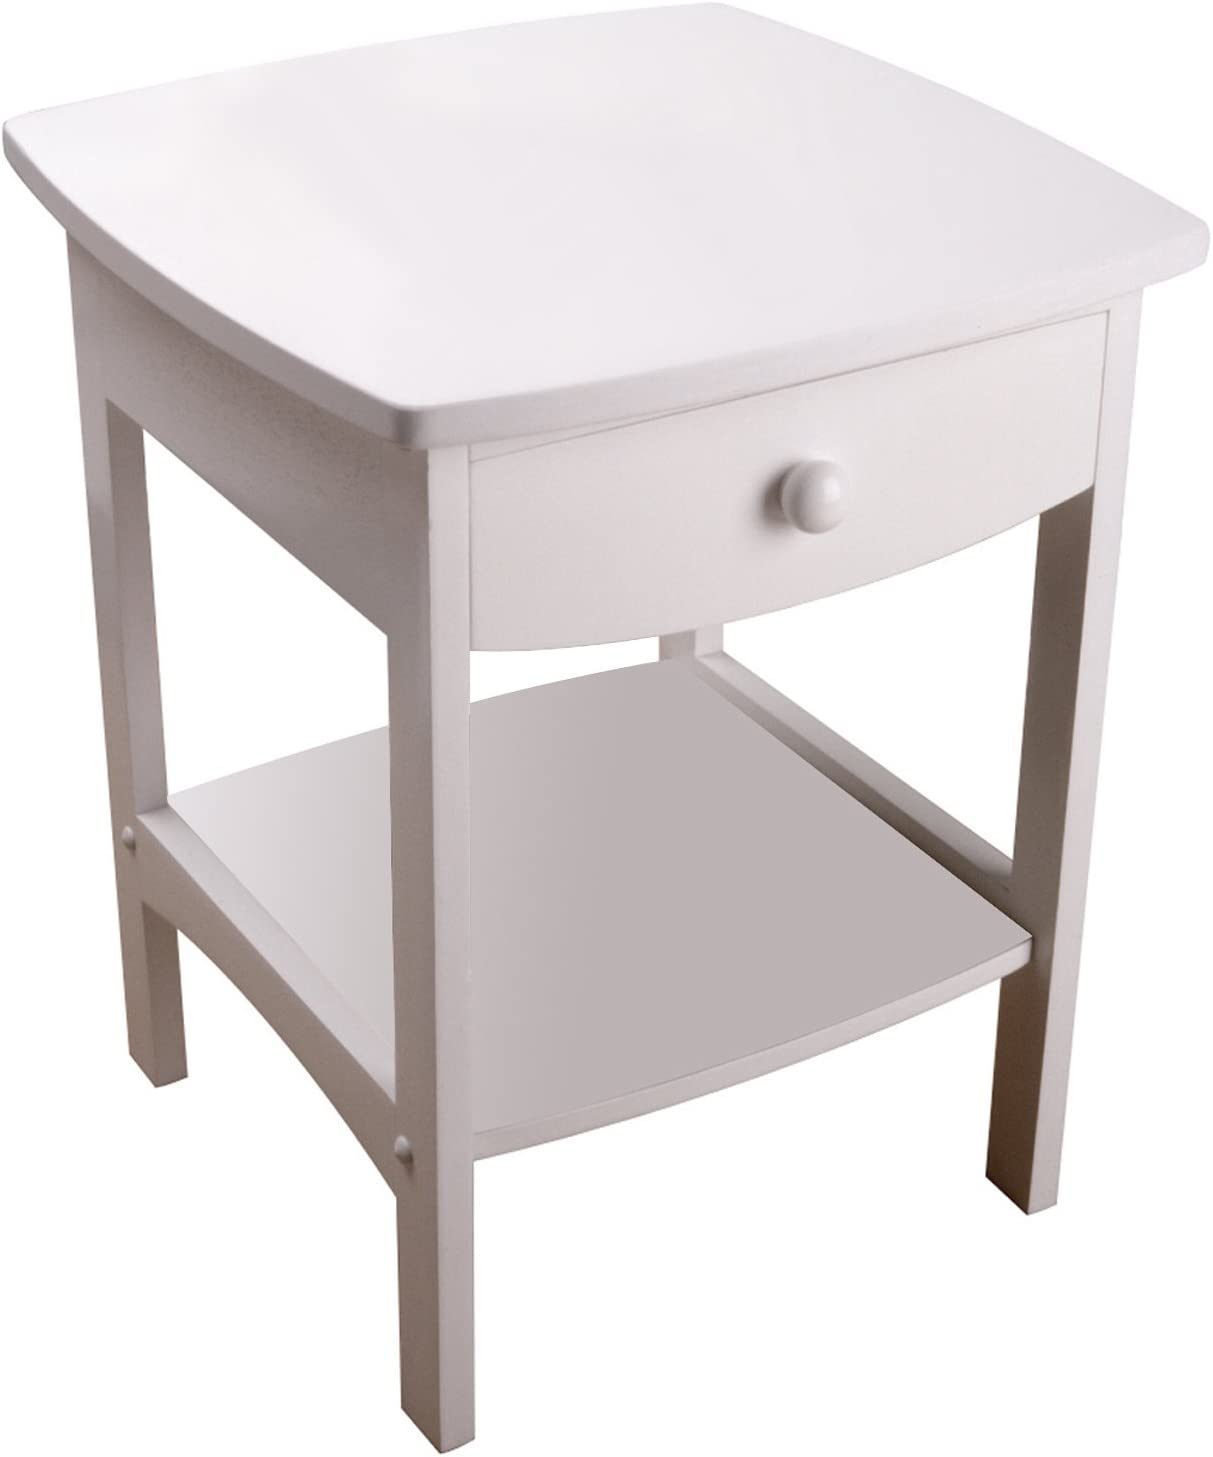 Winsome Wood Claire Accent Table, White